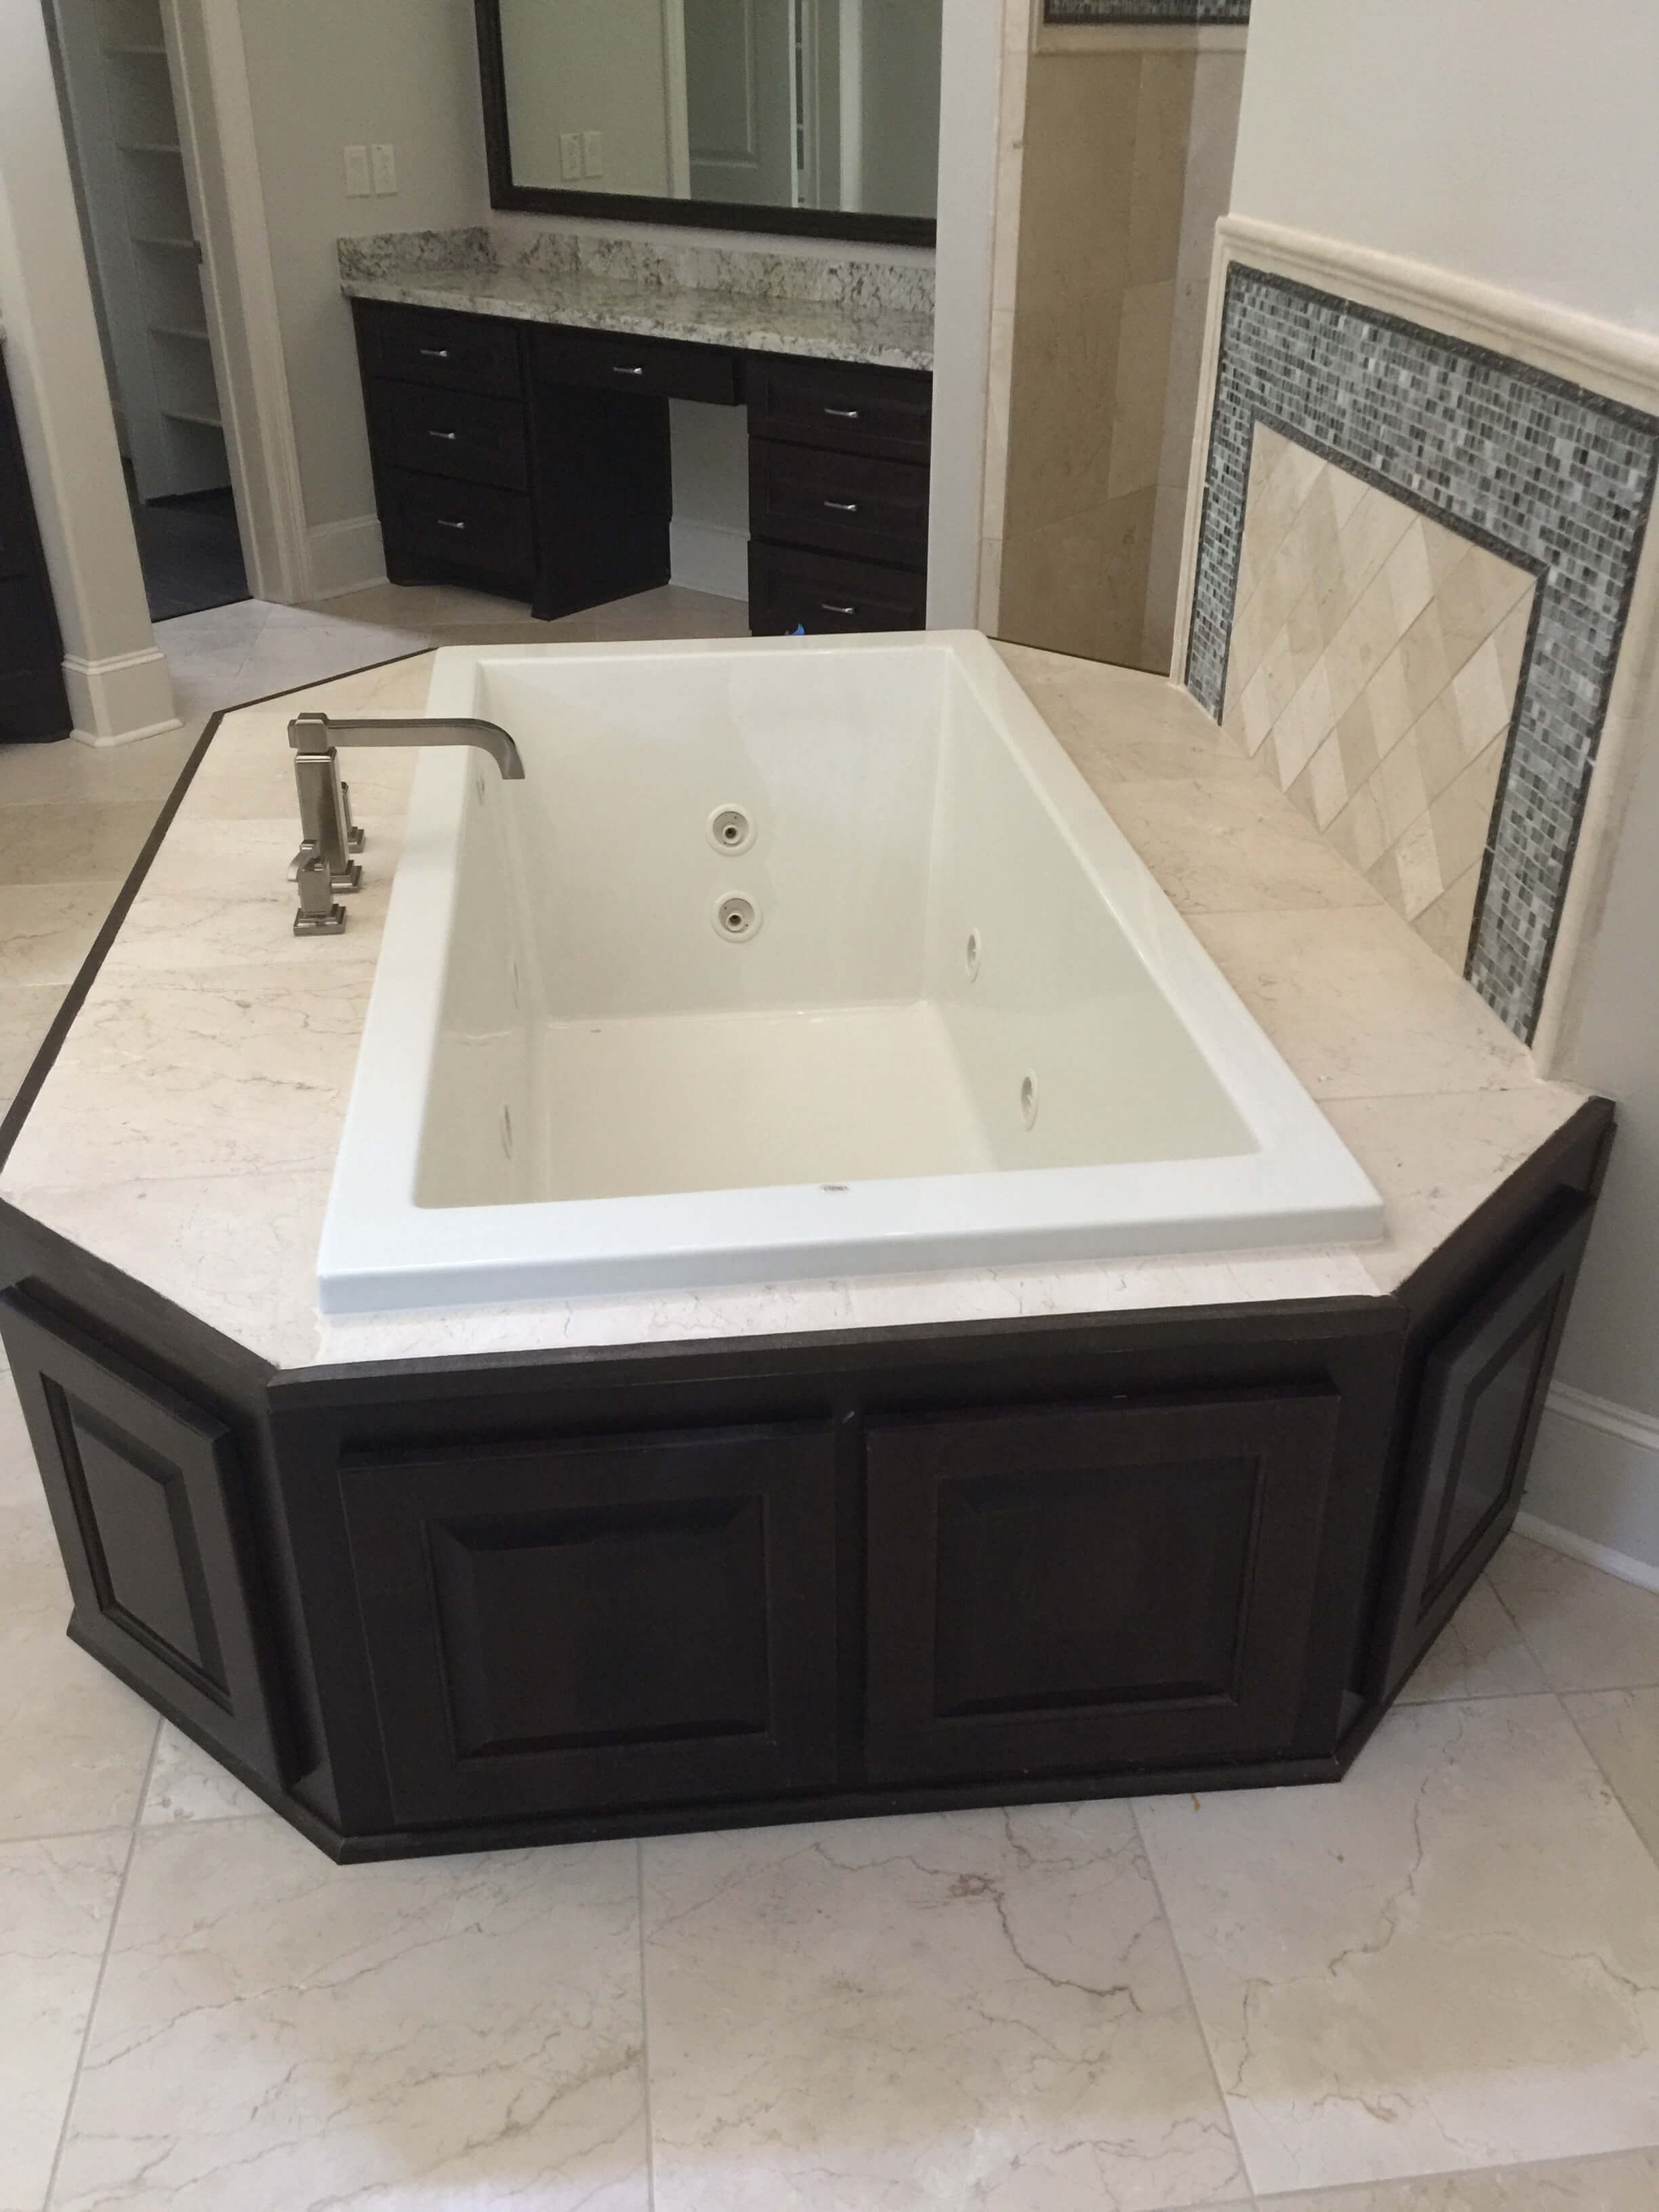 BEFORE  - The heavy surround of this deck mounted tub looked awkward floating out in the middle of this bathroom. #tub #bathroomdesign